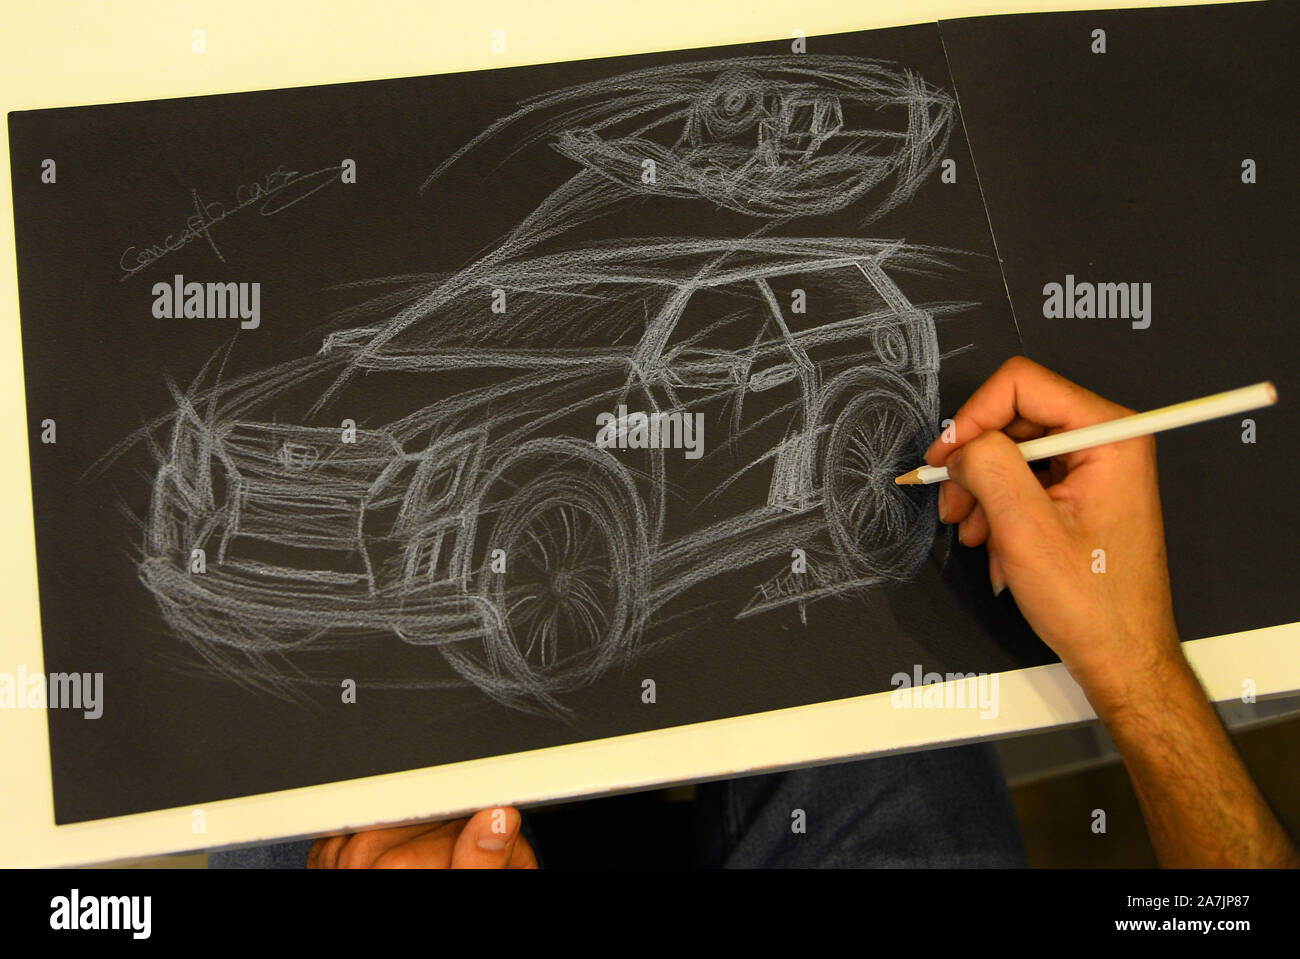 Gaza 22nd Oct 2019 Palestinian Bahi Aldabba Works On A Car Sketch Inside His Office In Gaza City Oct 22 2019 Many People Aspire To Be Car Designers But Few Make It